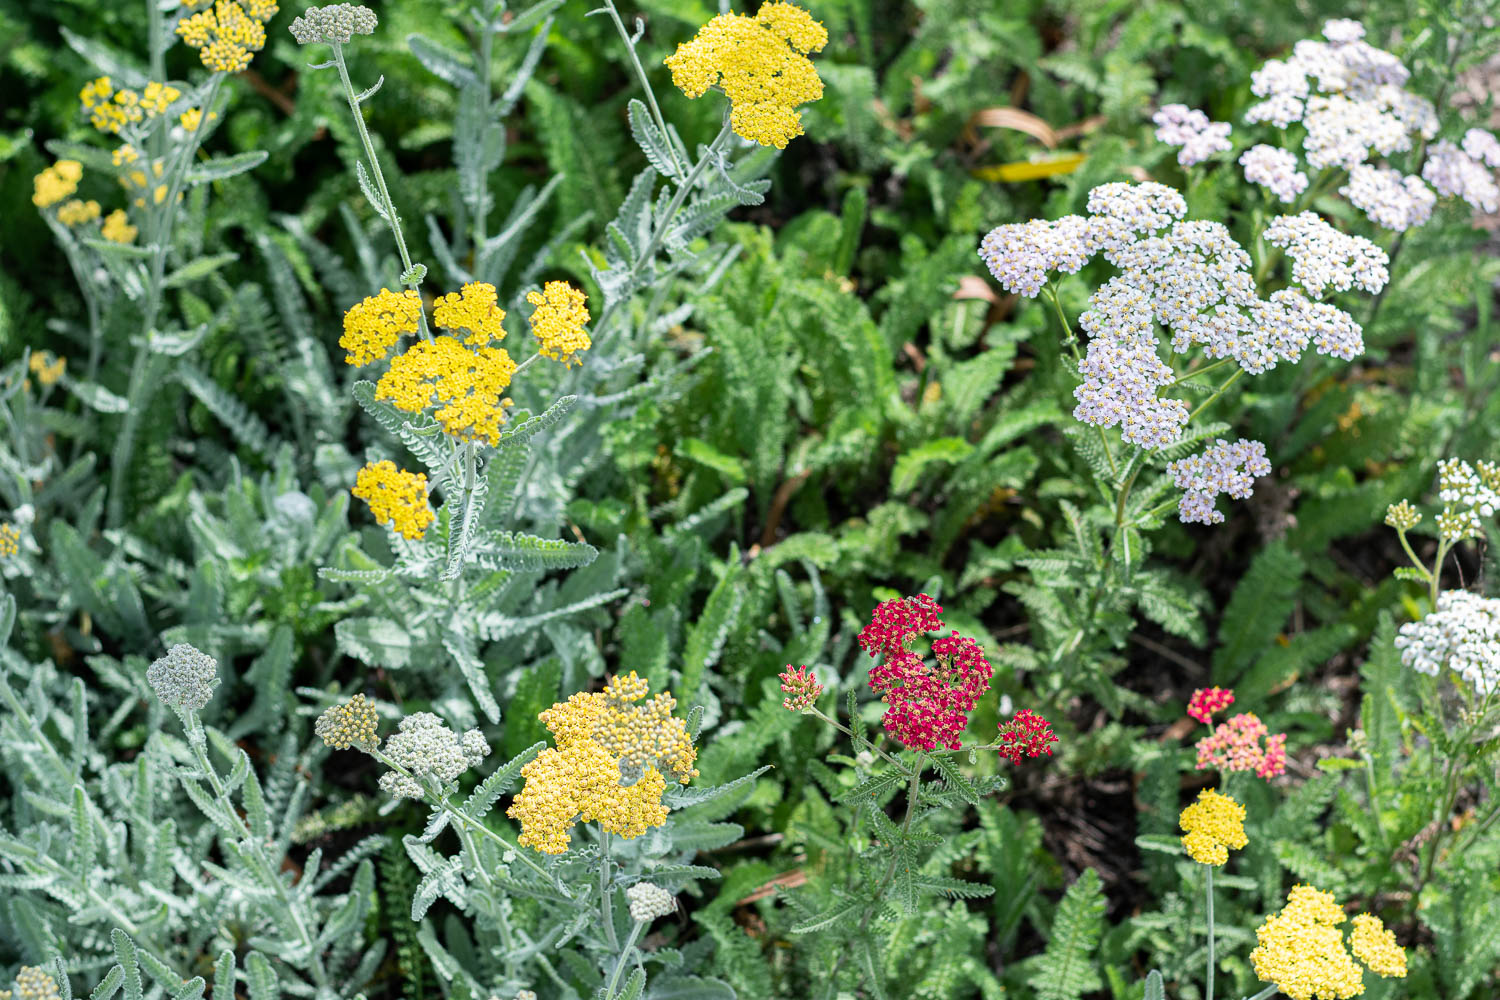 Yarrow - Yarrow comes in a billion colors and we have it in the white/yellow/red/pink hues. The flowers bloom as cool flat-topped mini flower clusters and the leaves are all different hues depending on the flower color. We planted them in the driveway to be a colorful ground cover, so it came as a surprise when they grew to be about 2 feet tall! To keep them from getting too crazy, I cut back the flowers to the ground each fall when the color fades from the blooms. I've heard of the flowers being used as dyes and even being brewed as a tea - this is on my to-do list.